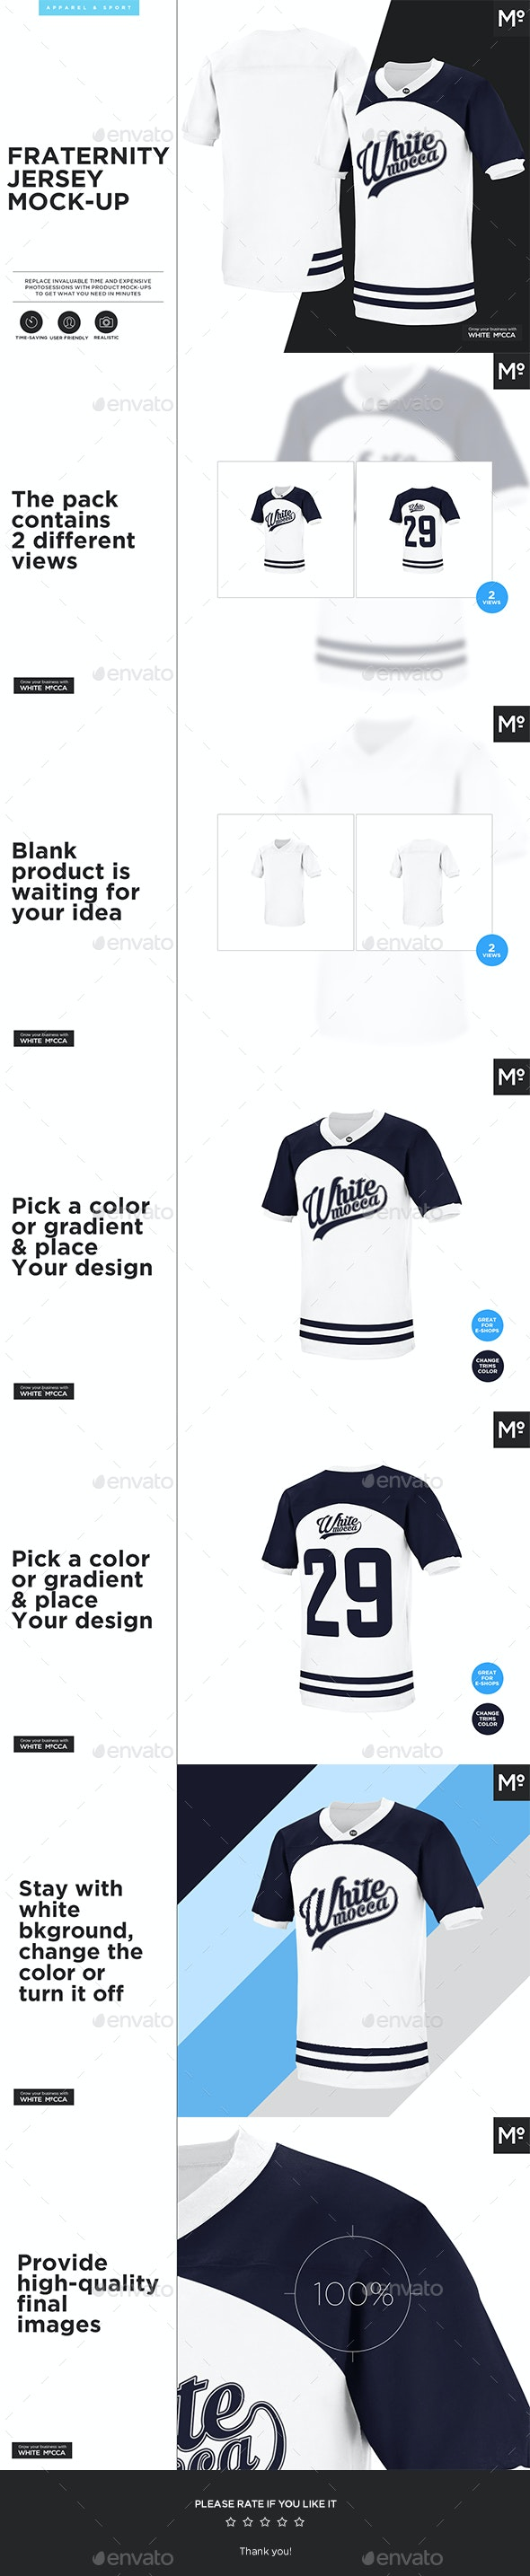 Fraternity Jersey Mock-up - Miscellaneous Apparel